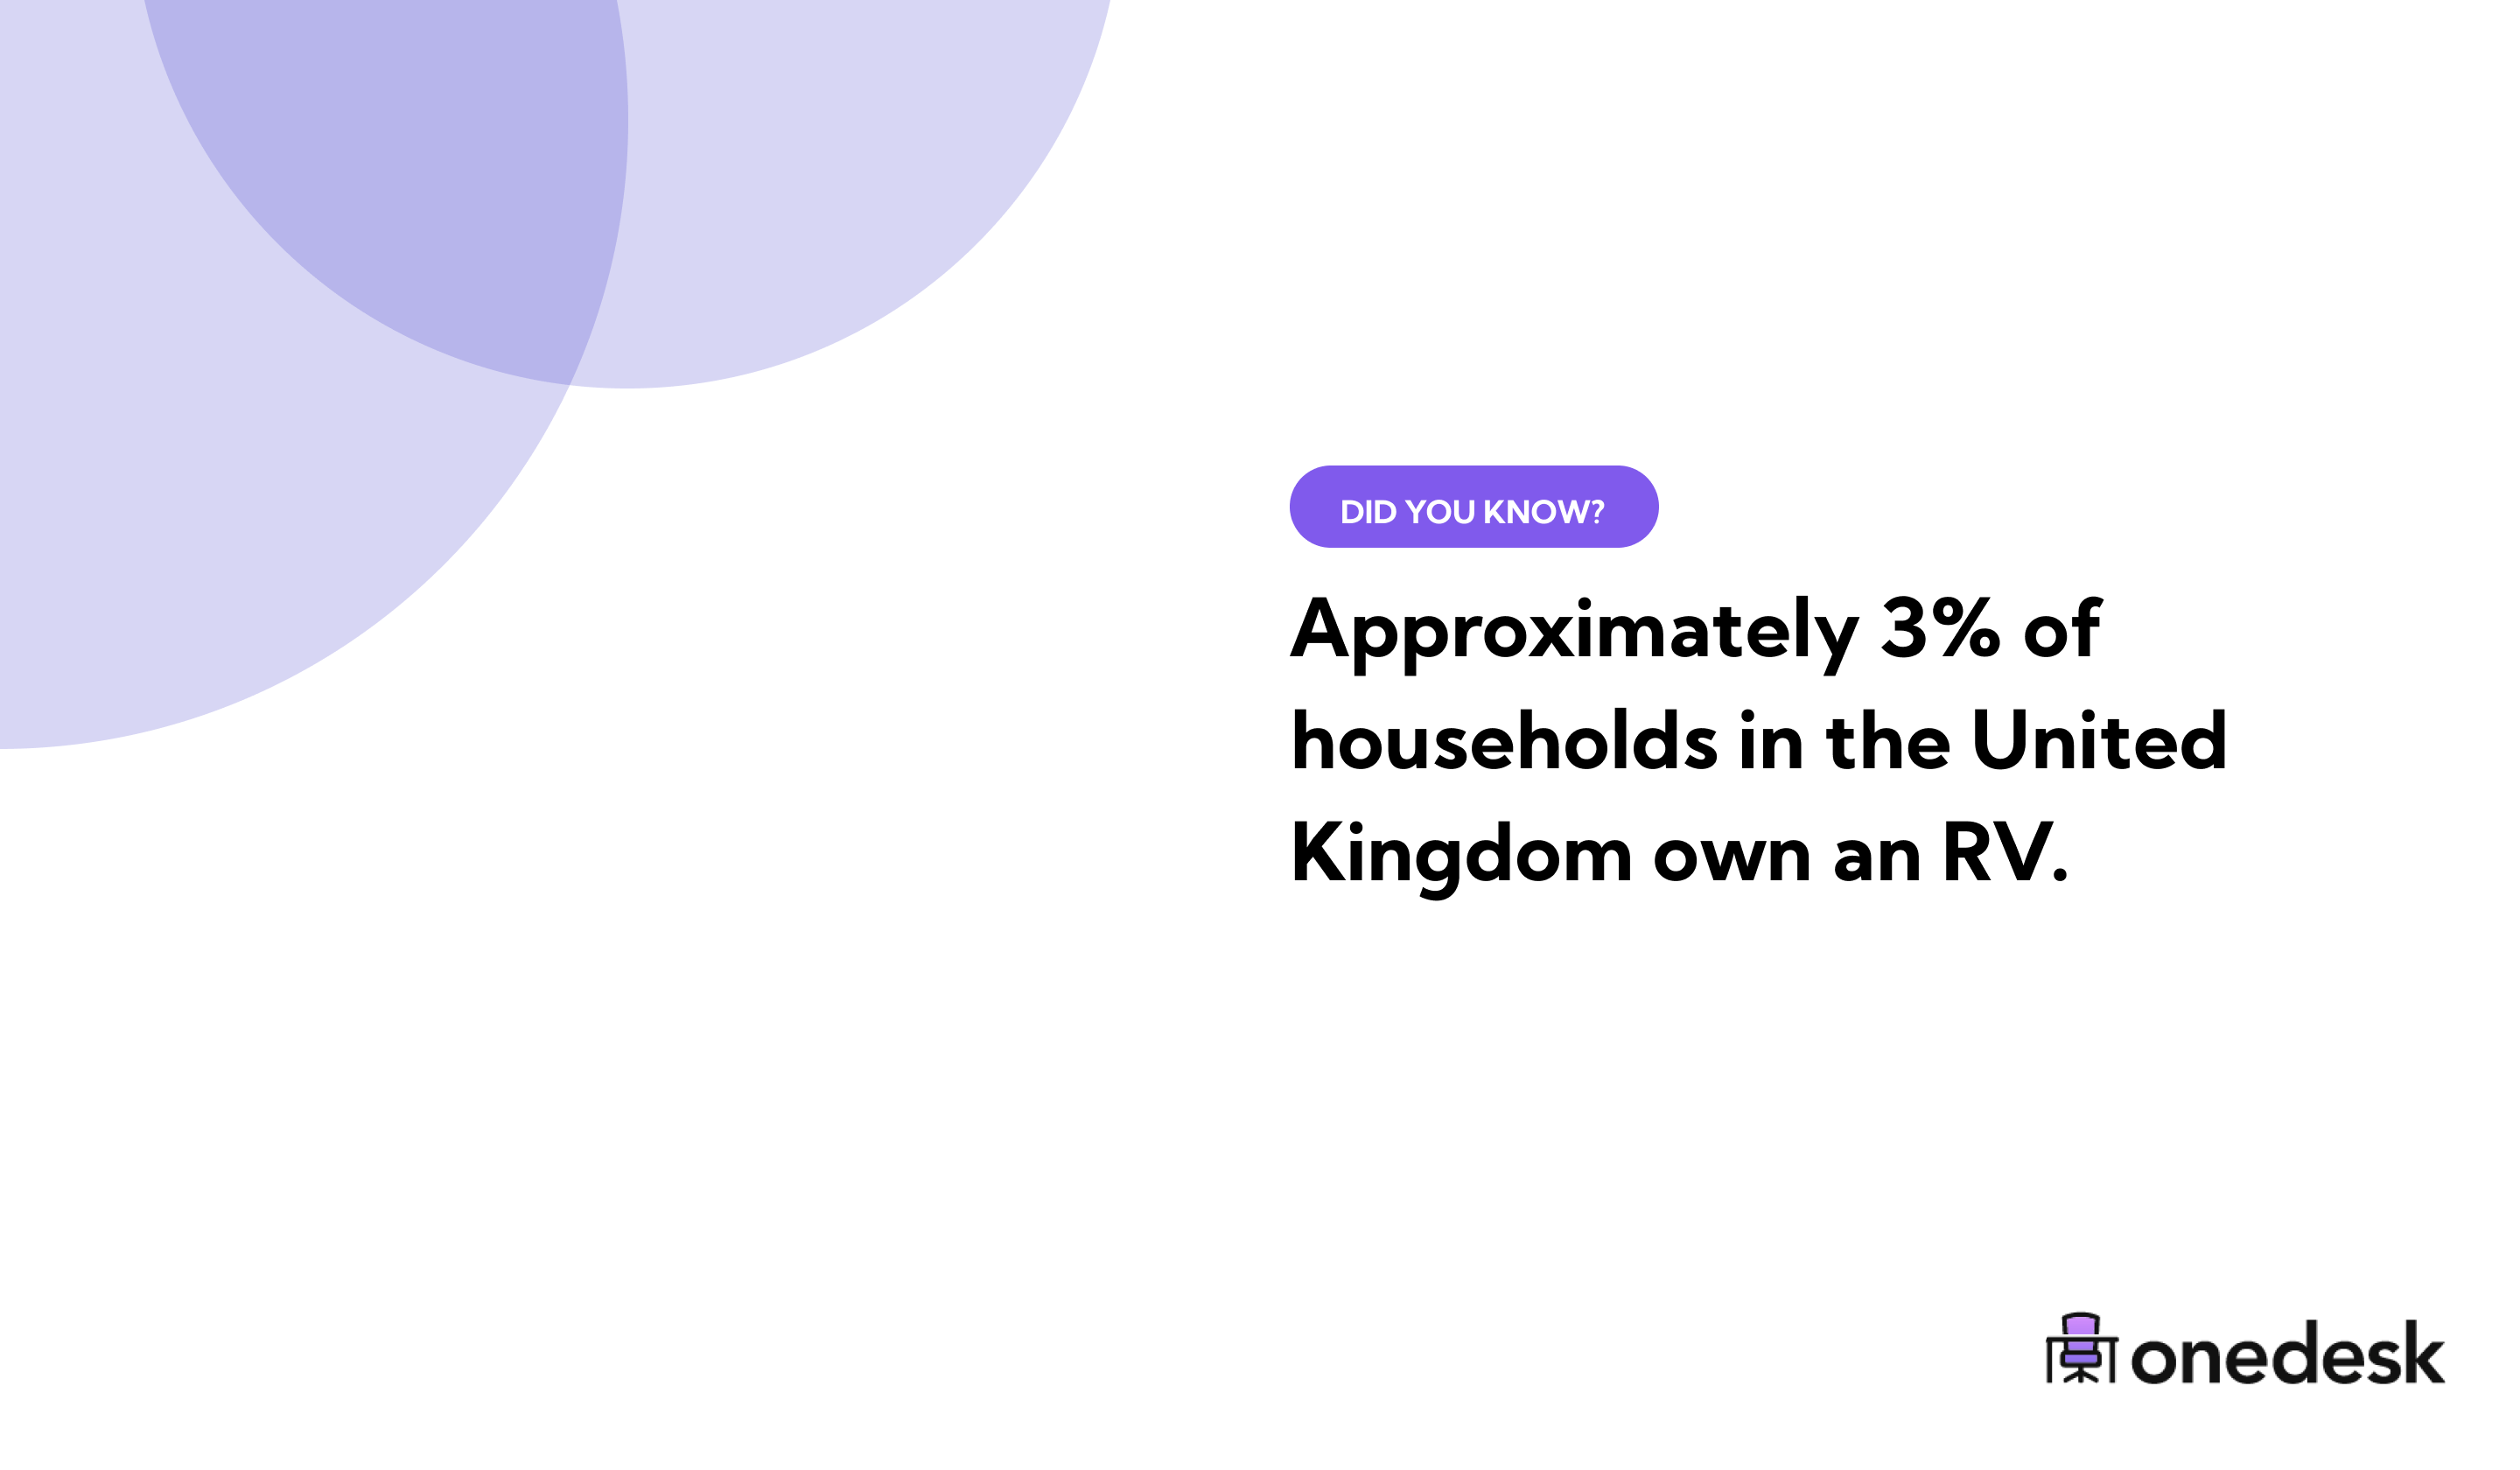 percent of households in UK that own an RV